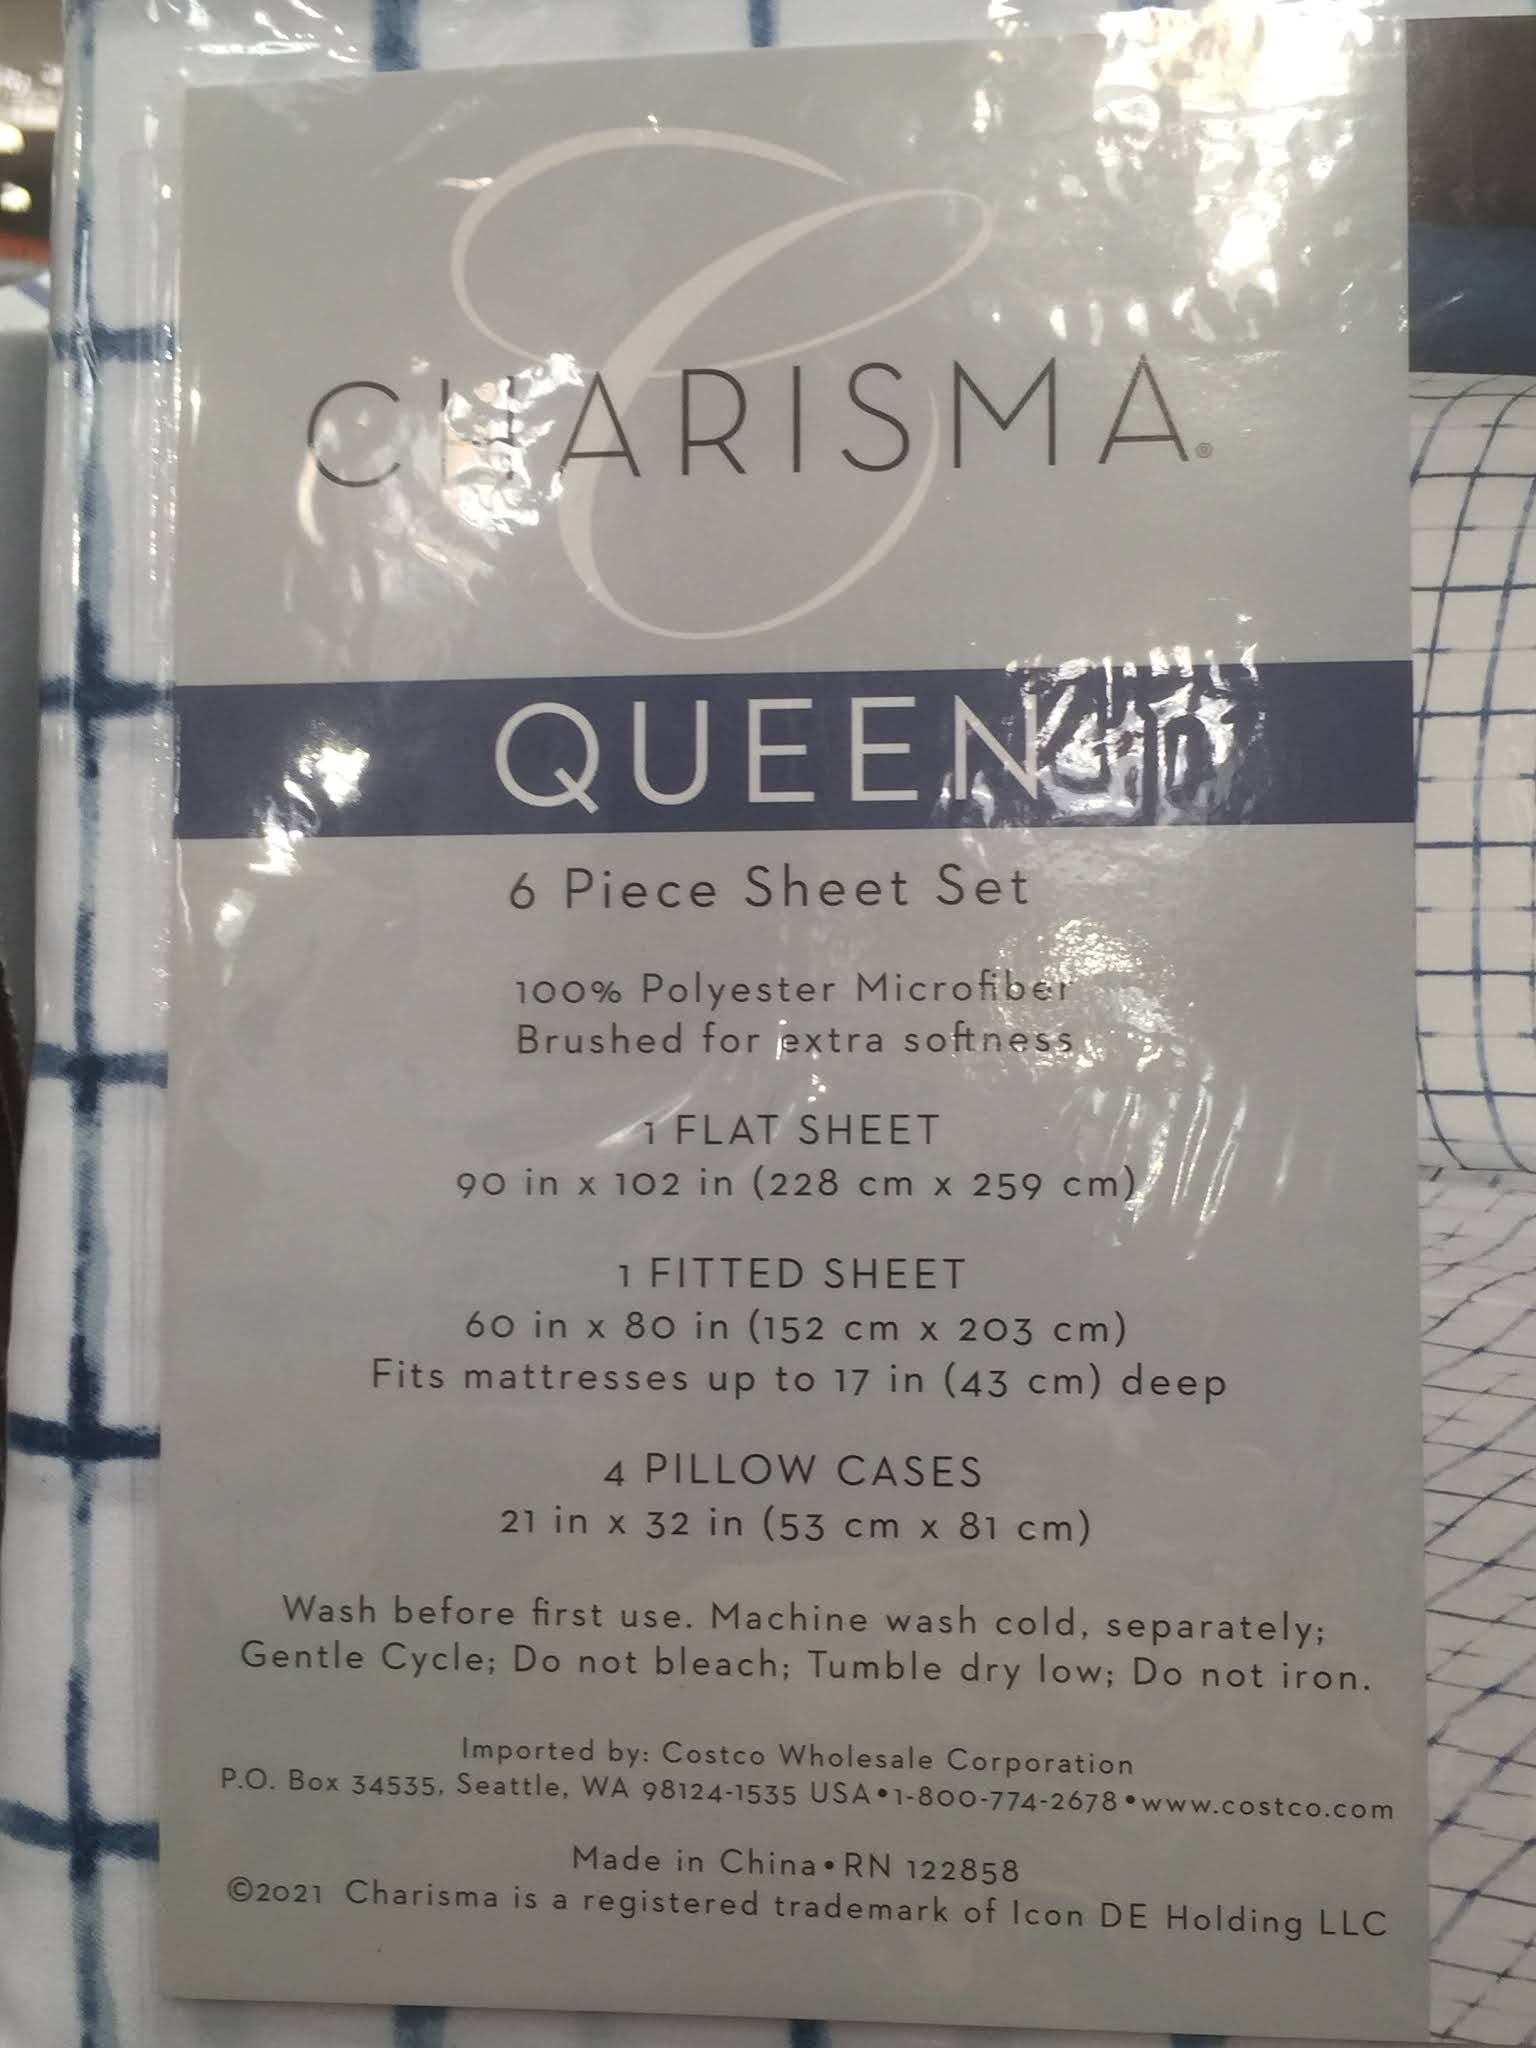 Costco 1463837 - Charisma 6-piece Microfiber Sheet Set: great for any queen size bed